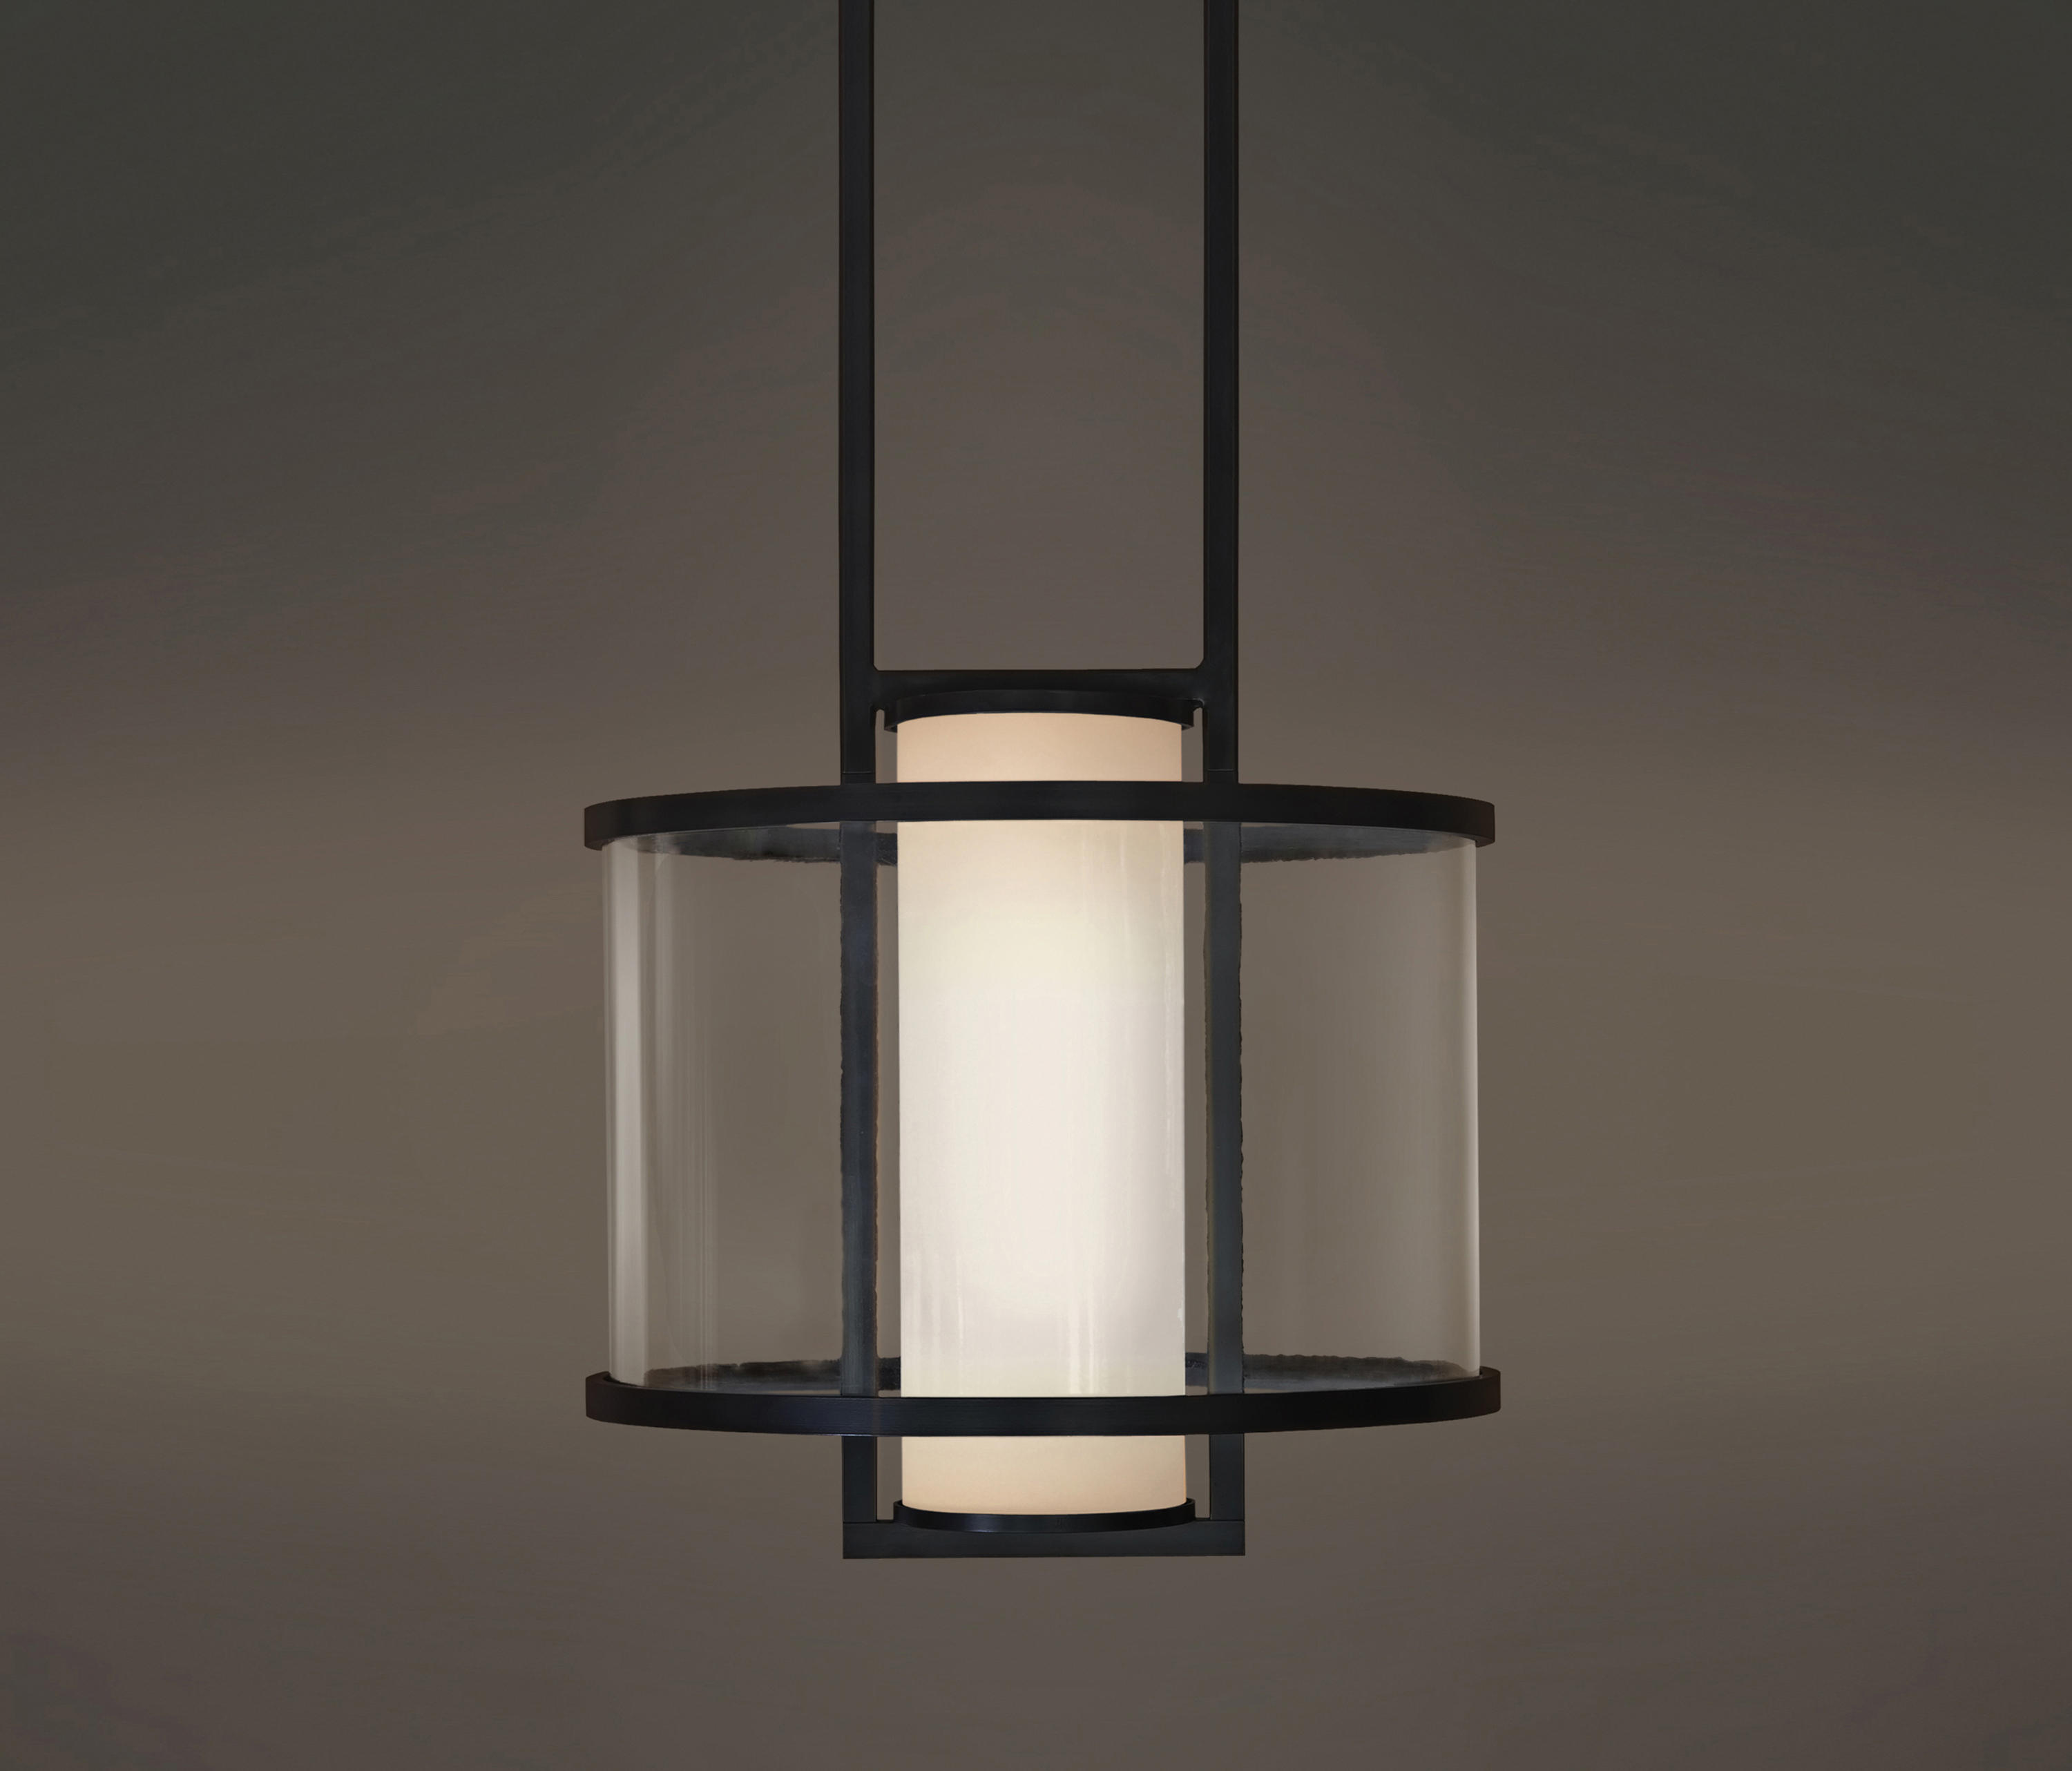 ... Garda by Kevin Reilly Collection | Suspended lights ... & GARDA - Suspended lights from Kevin Reilly Collection | Architonic